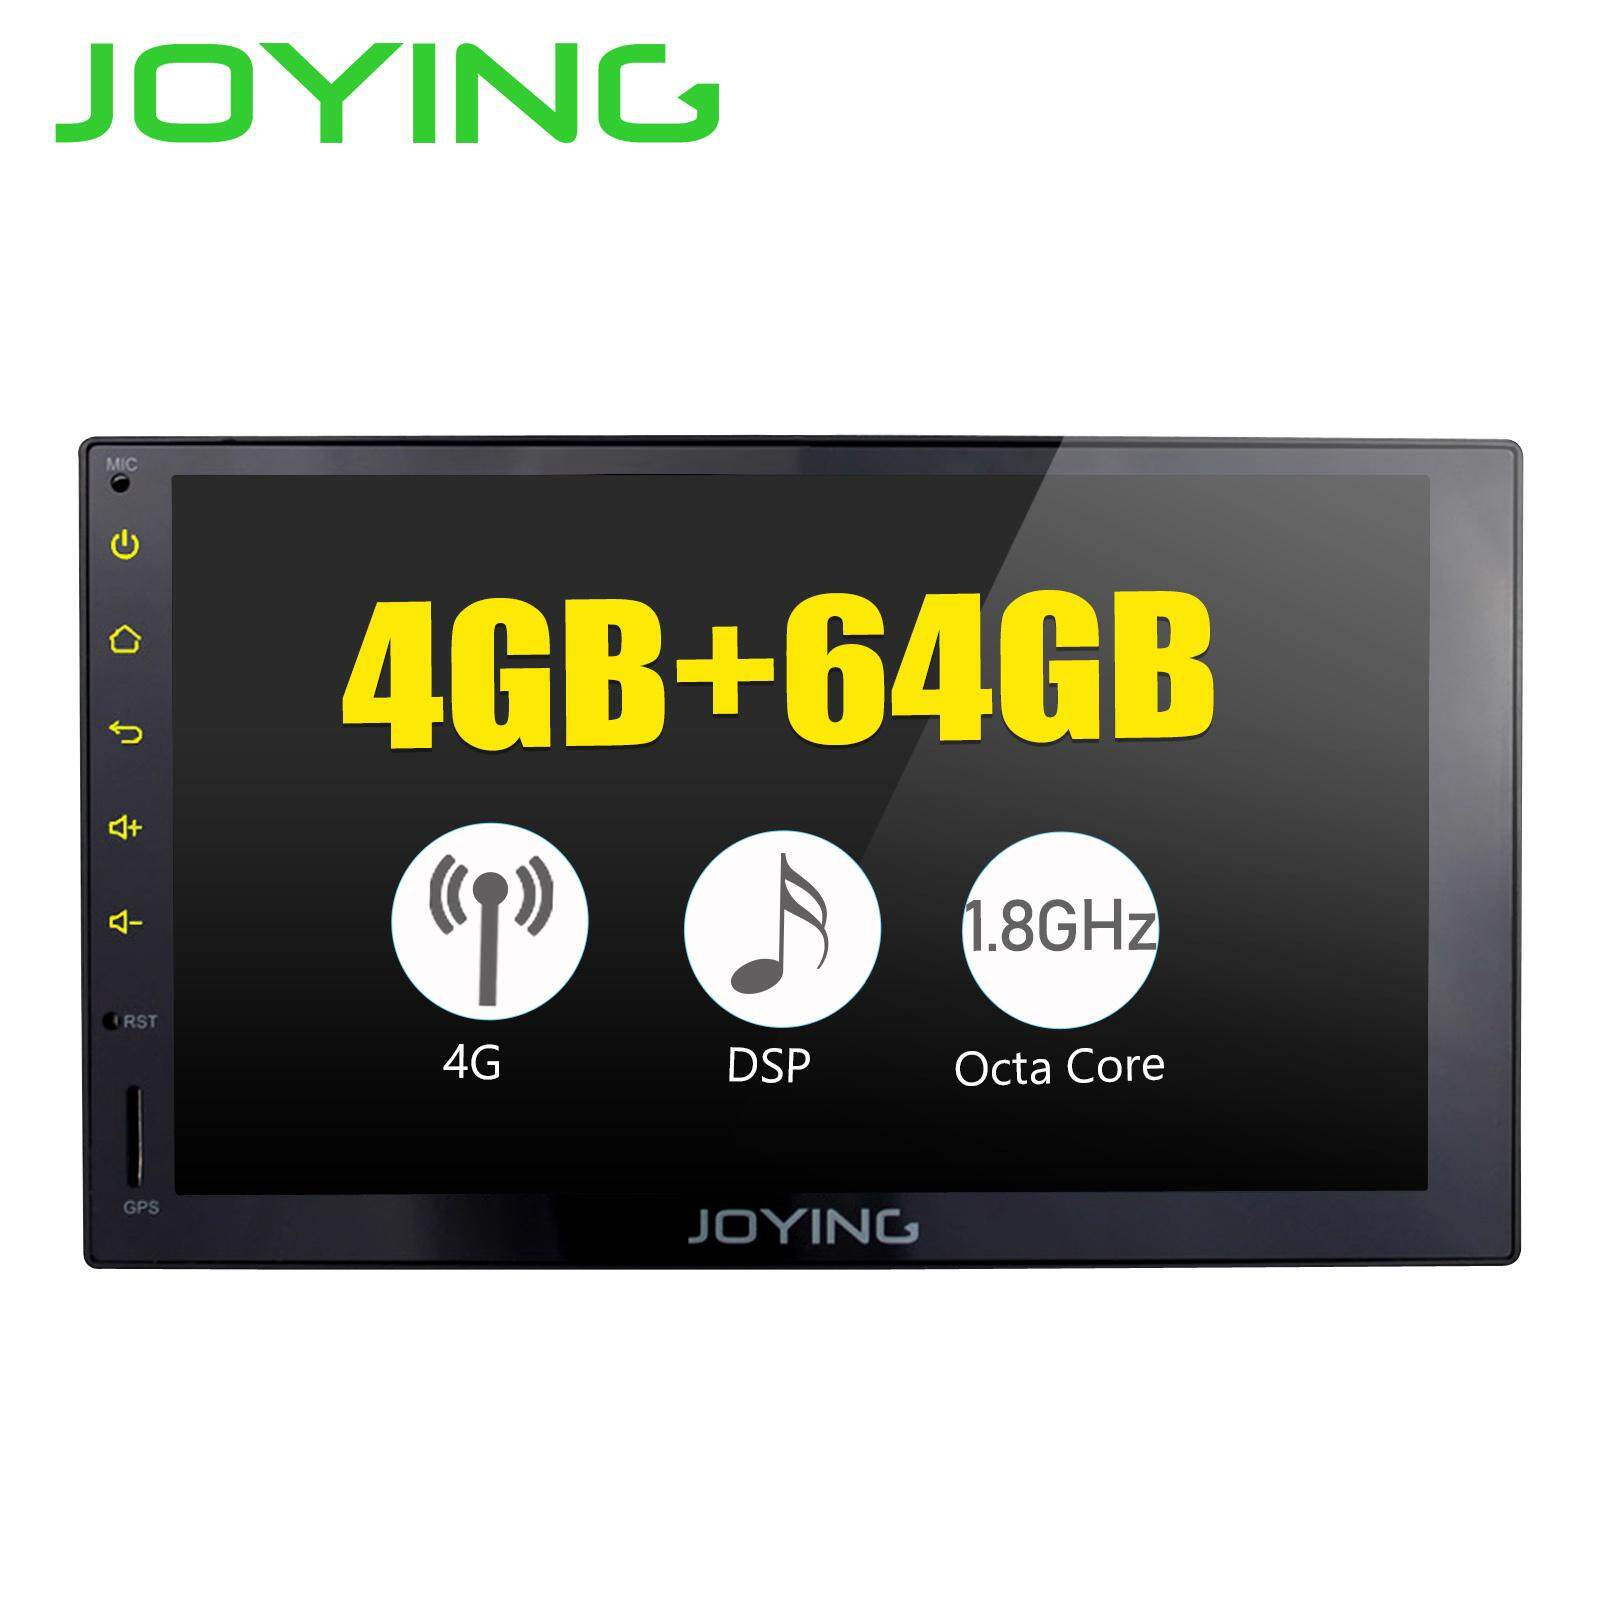 JOYING universal double din android 8 1 car stereo multimedia player octa  core 1 8GHZ 4GB RAM 64GB ROM bluetooth 4G WiFi head unit support steering